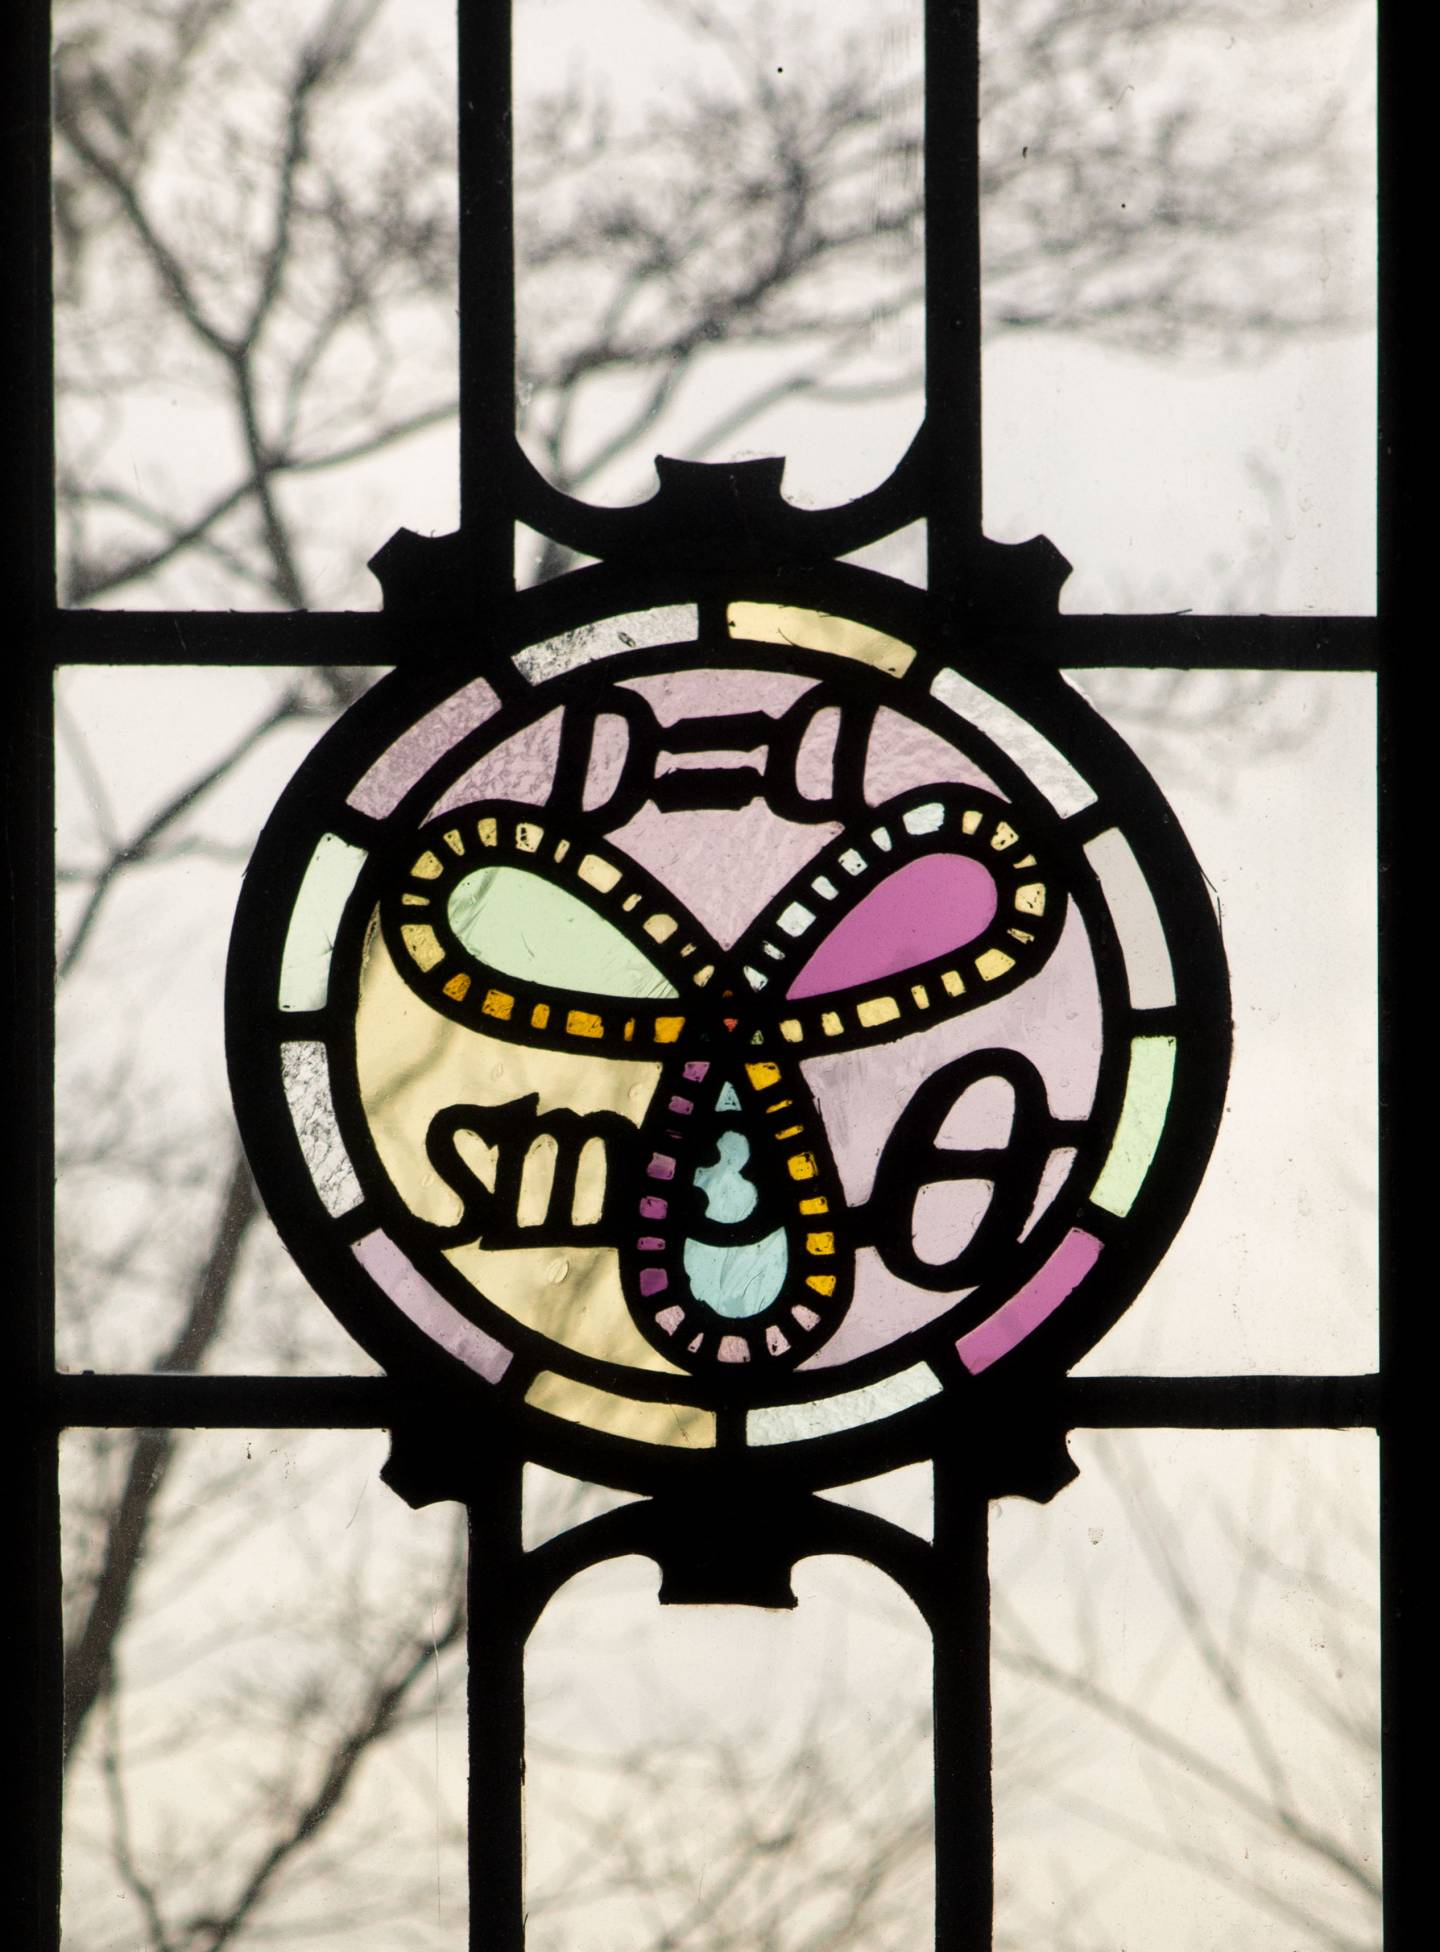 Fine Hall window with math formula in stained glass